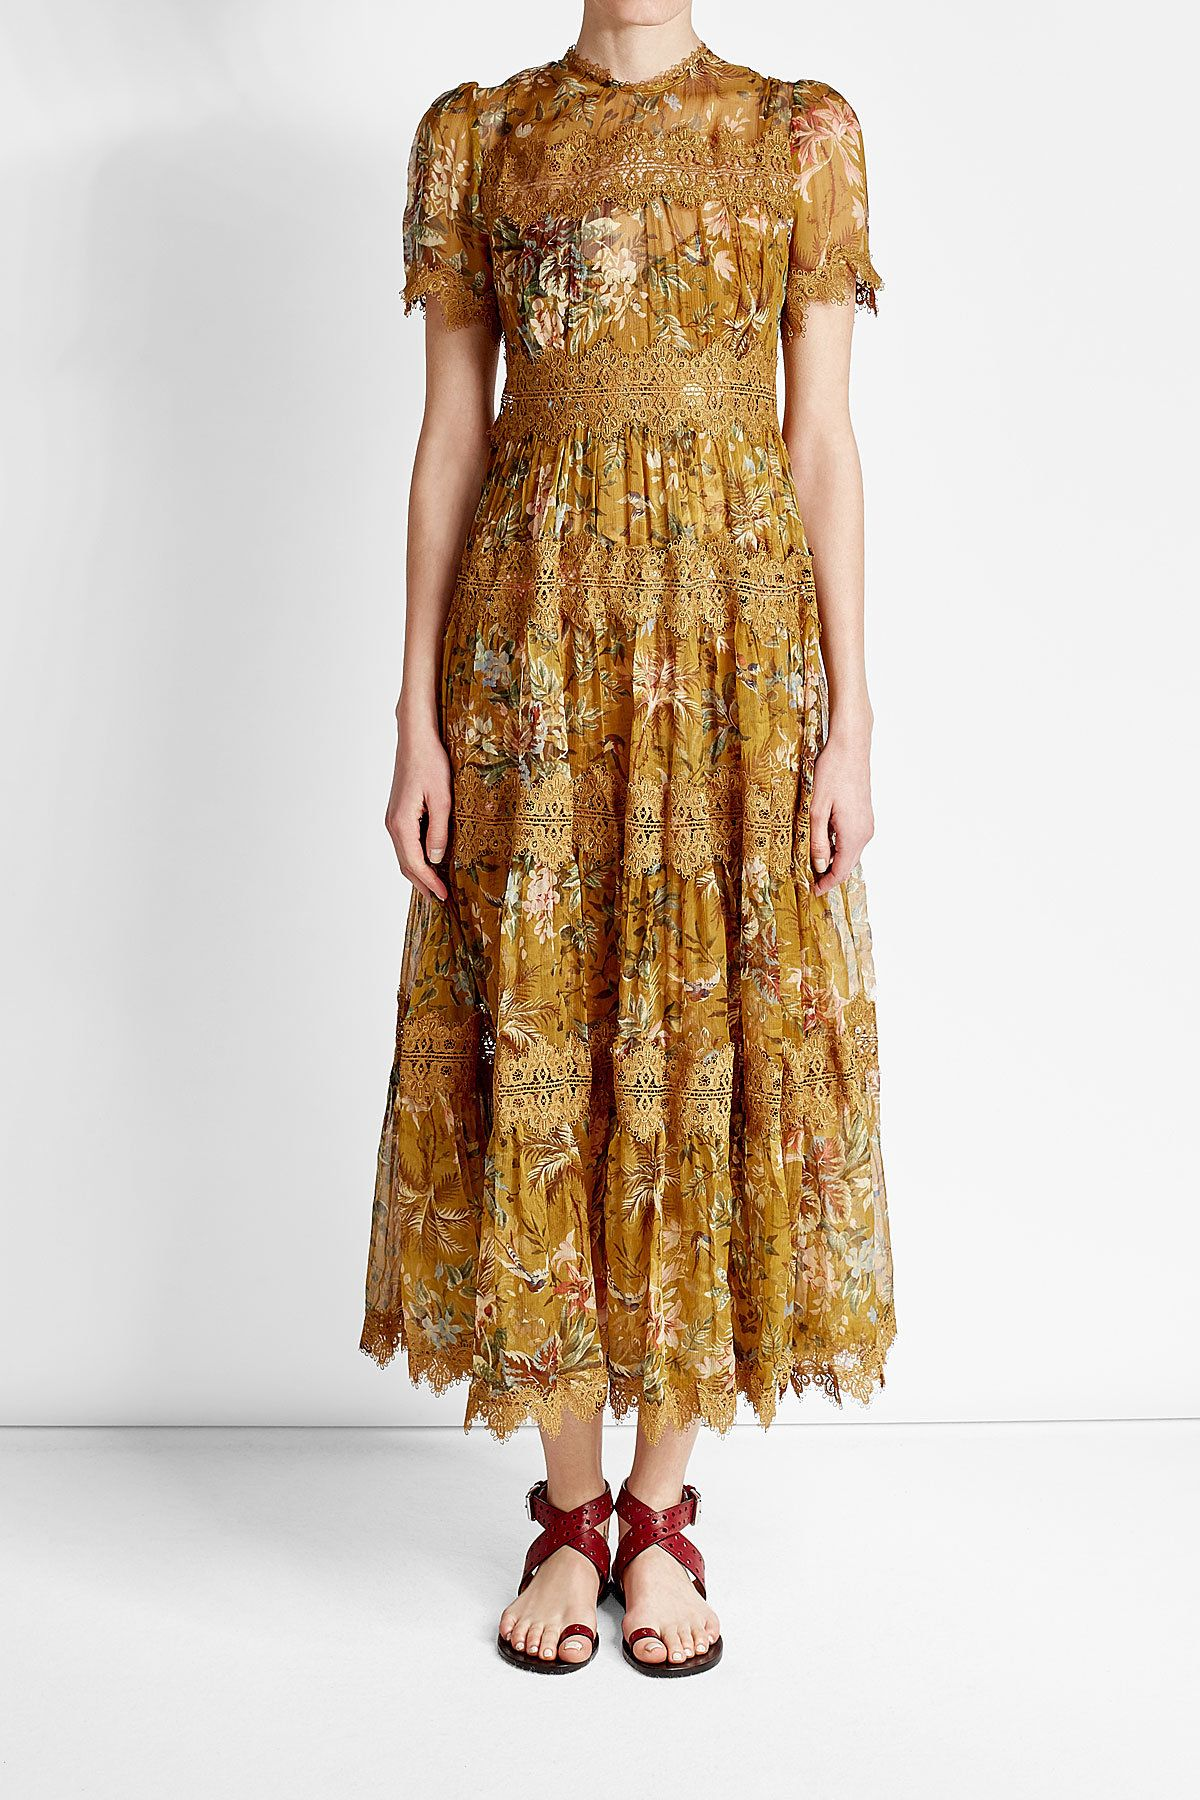 Zimmermann - Silk Maxi Dress with Lace Details | STYLEBOP ...